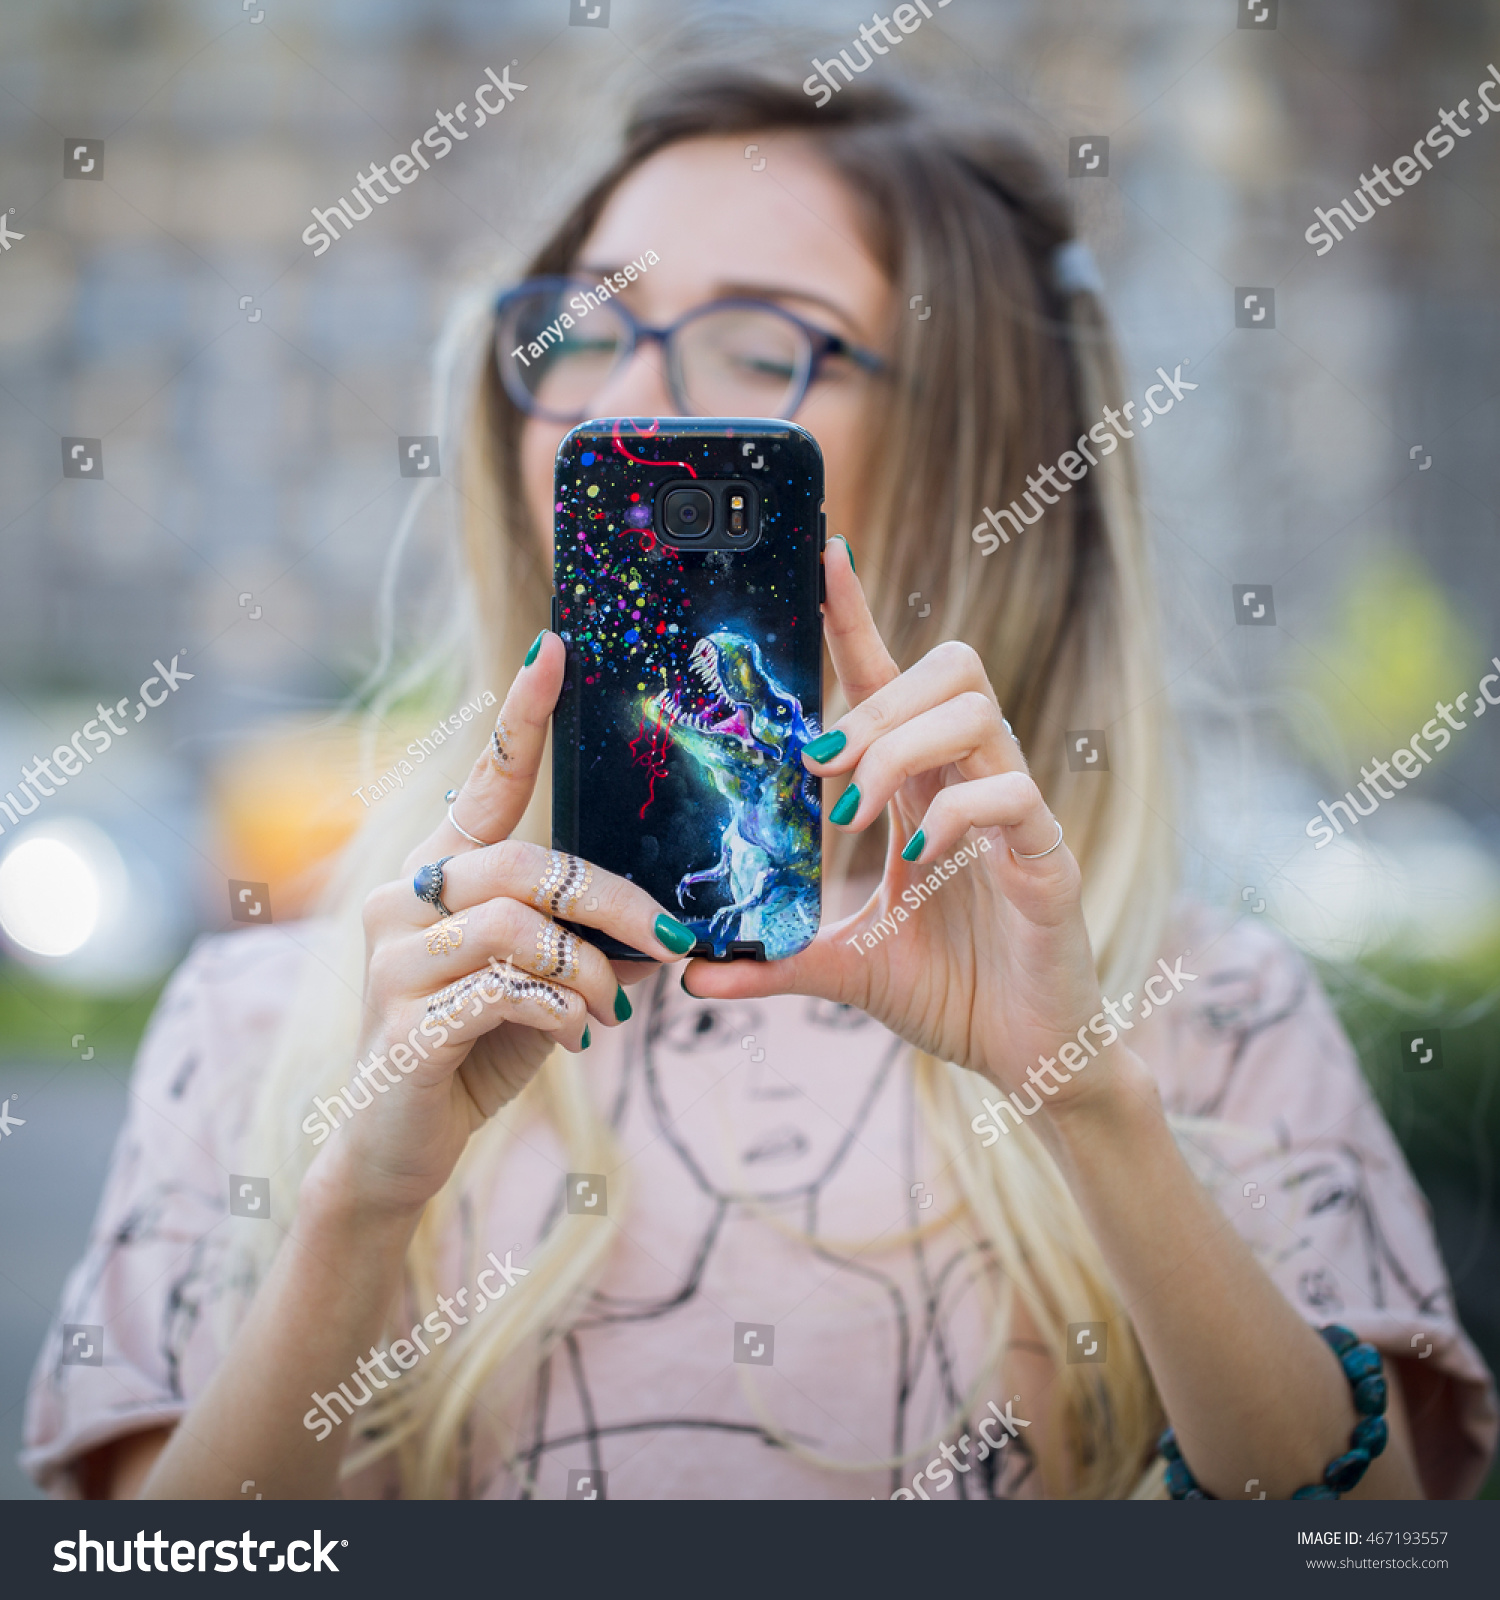 Young blond girl taking a selfie with a phone Custom artwork print on case Blurred background